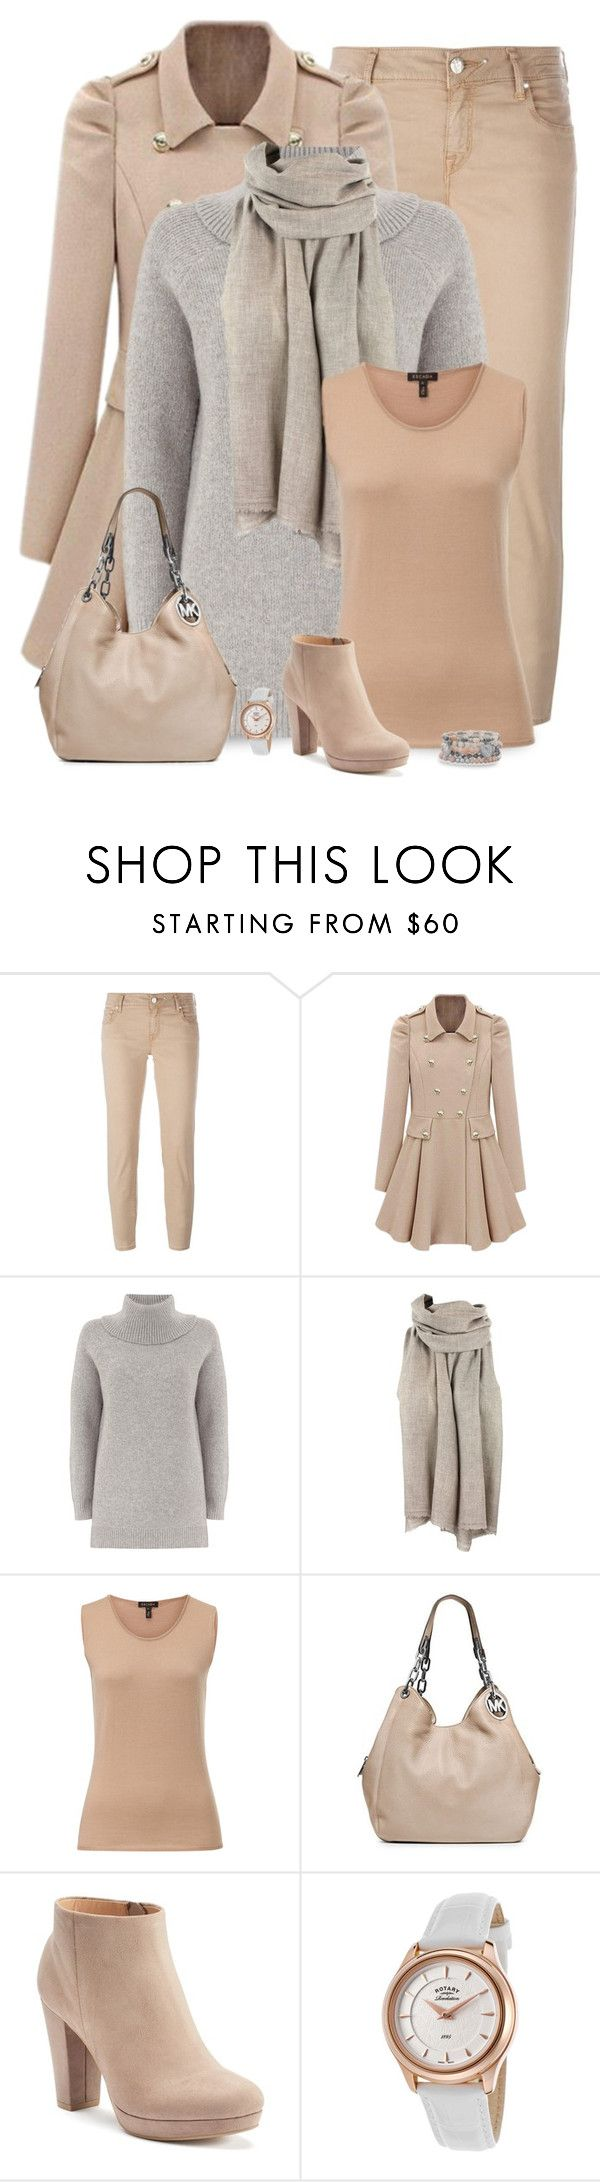 """Nudest"" by csilla06 ❤ liked on Polyvore featuring Jacob Cohёn, Mint Velvet, ESCADA, MICHAEL Michael Kors, LC Lauren Conrad, Rotary and BillyTheTree"